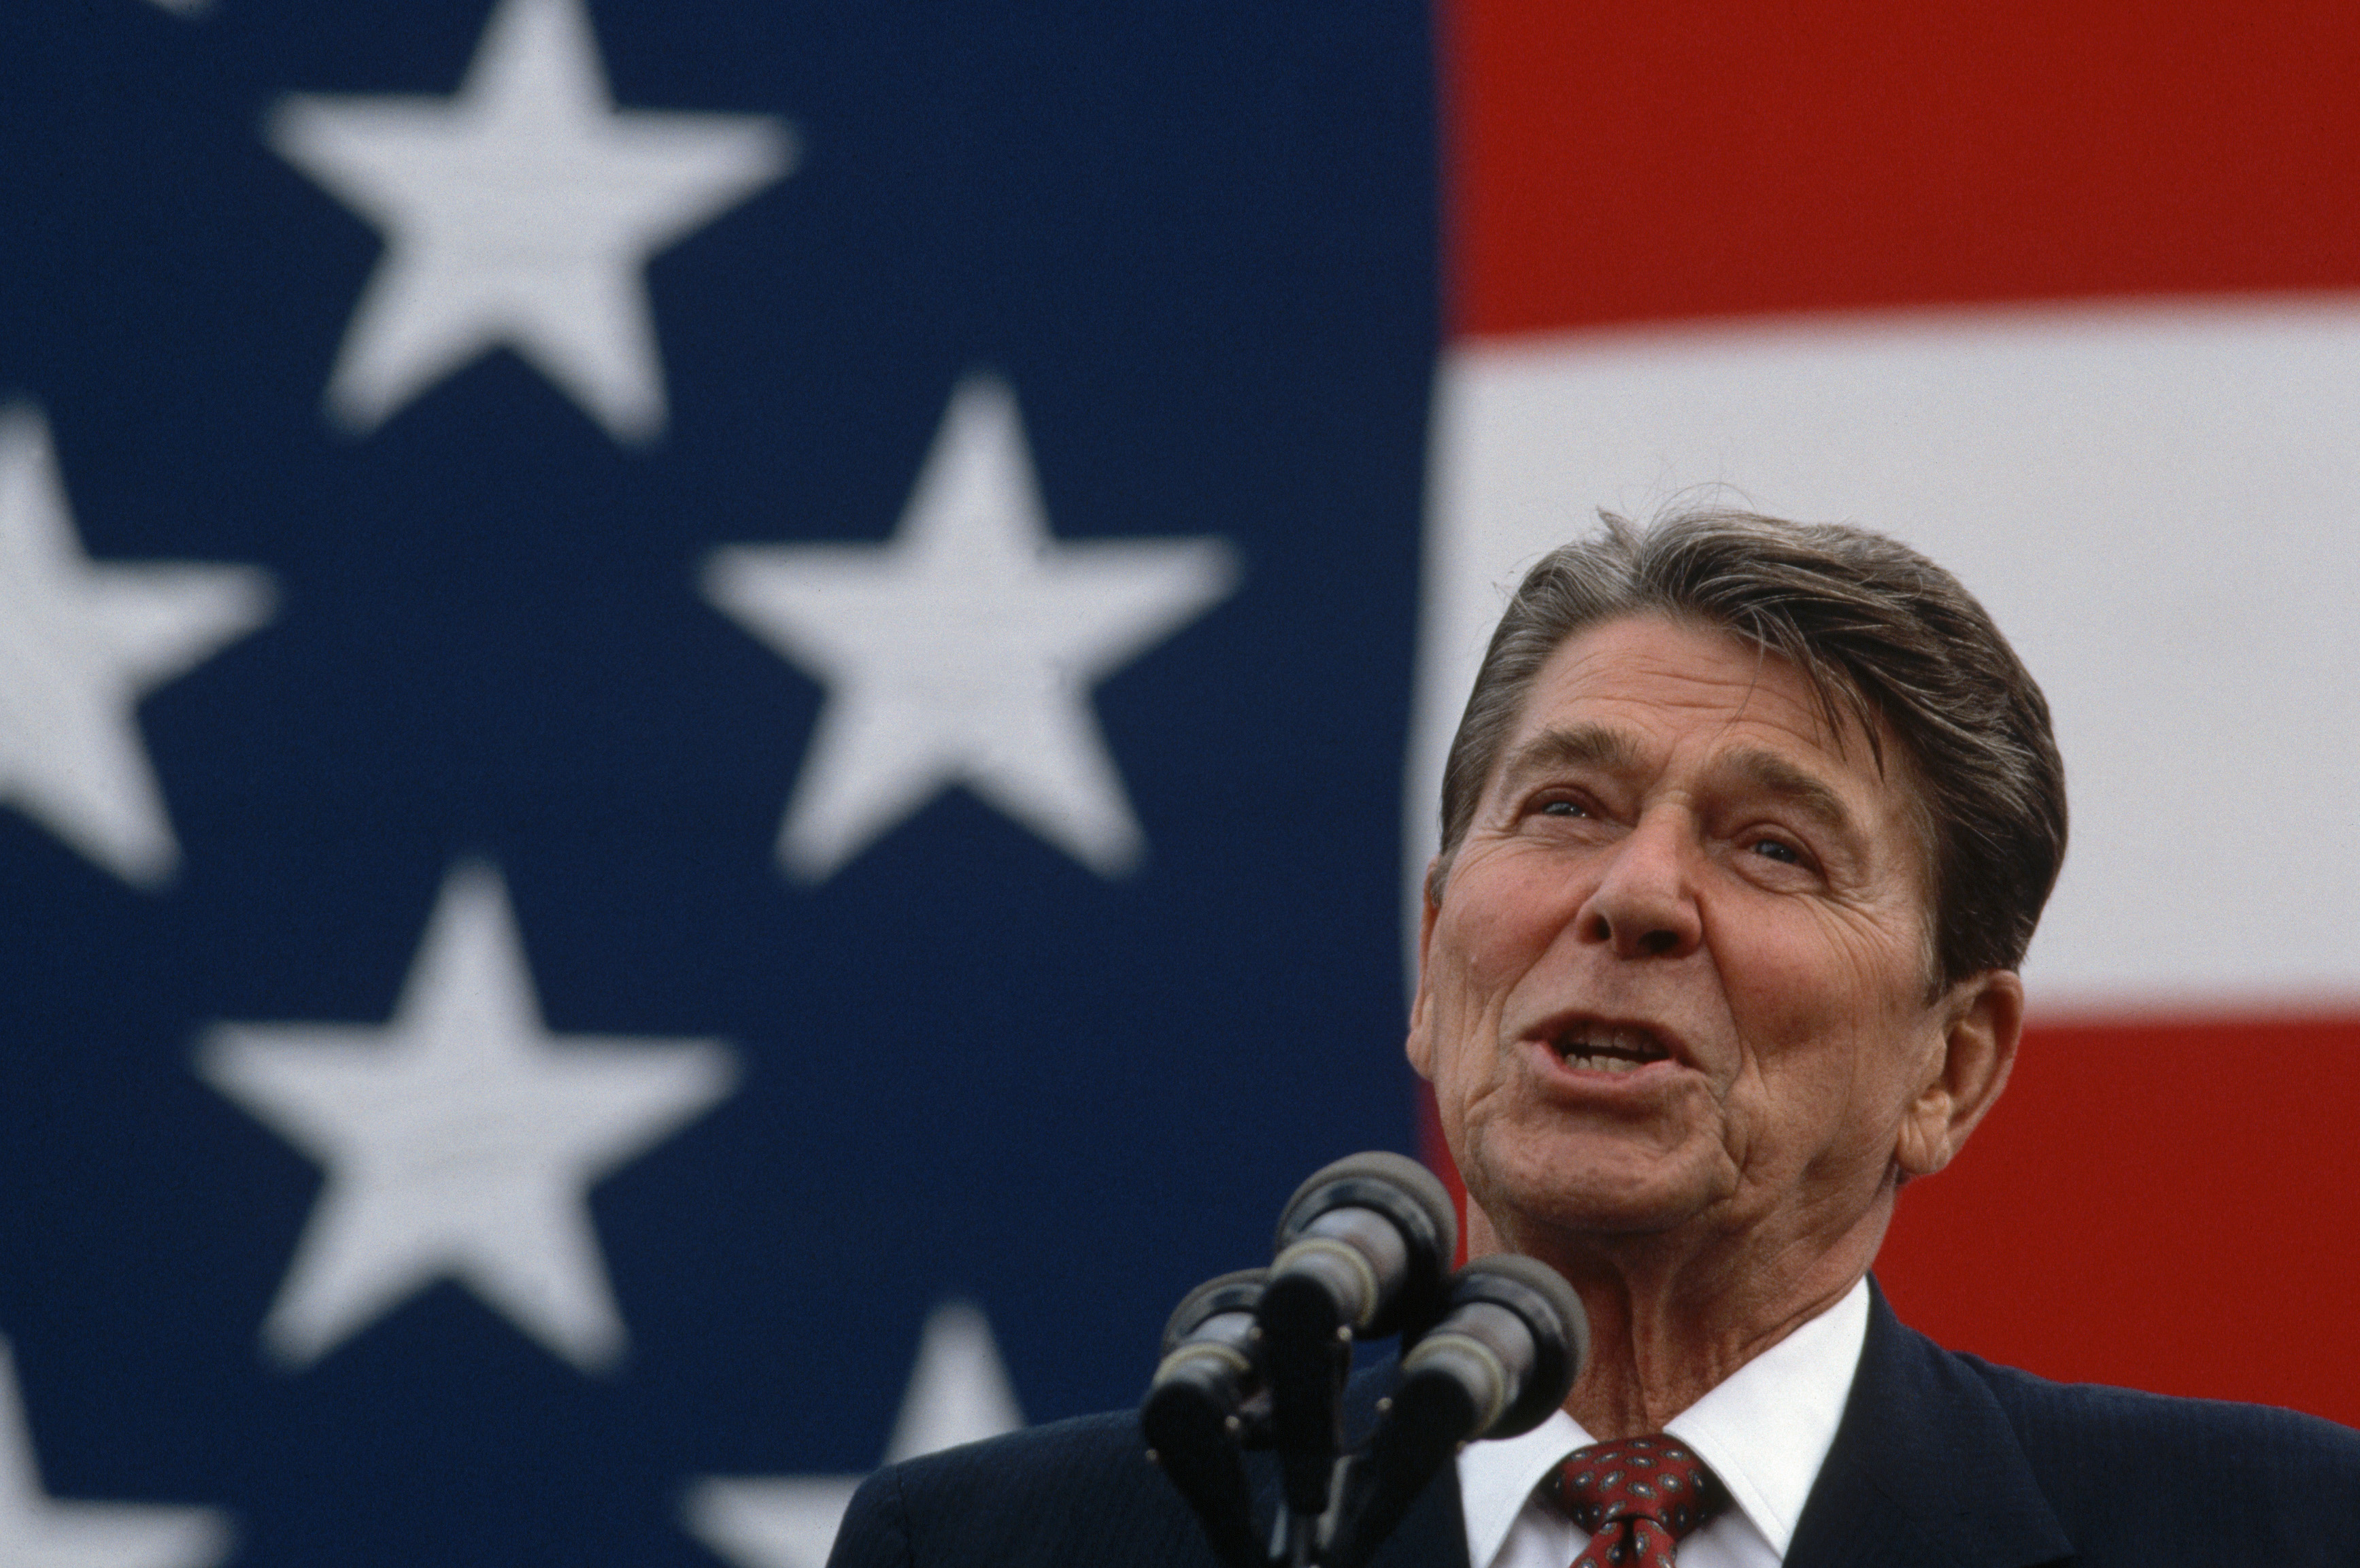 President Ronald Reagan makes a stump speech in front of a large American flag. (Photo by Wally McNamee/CORBIS via Getty Images)